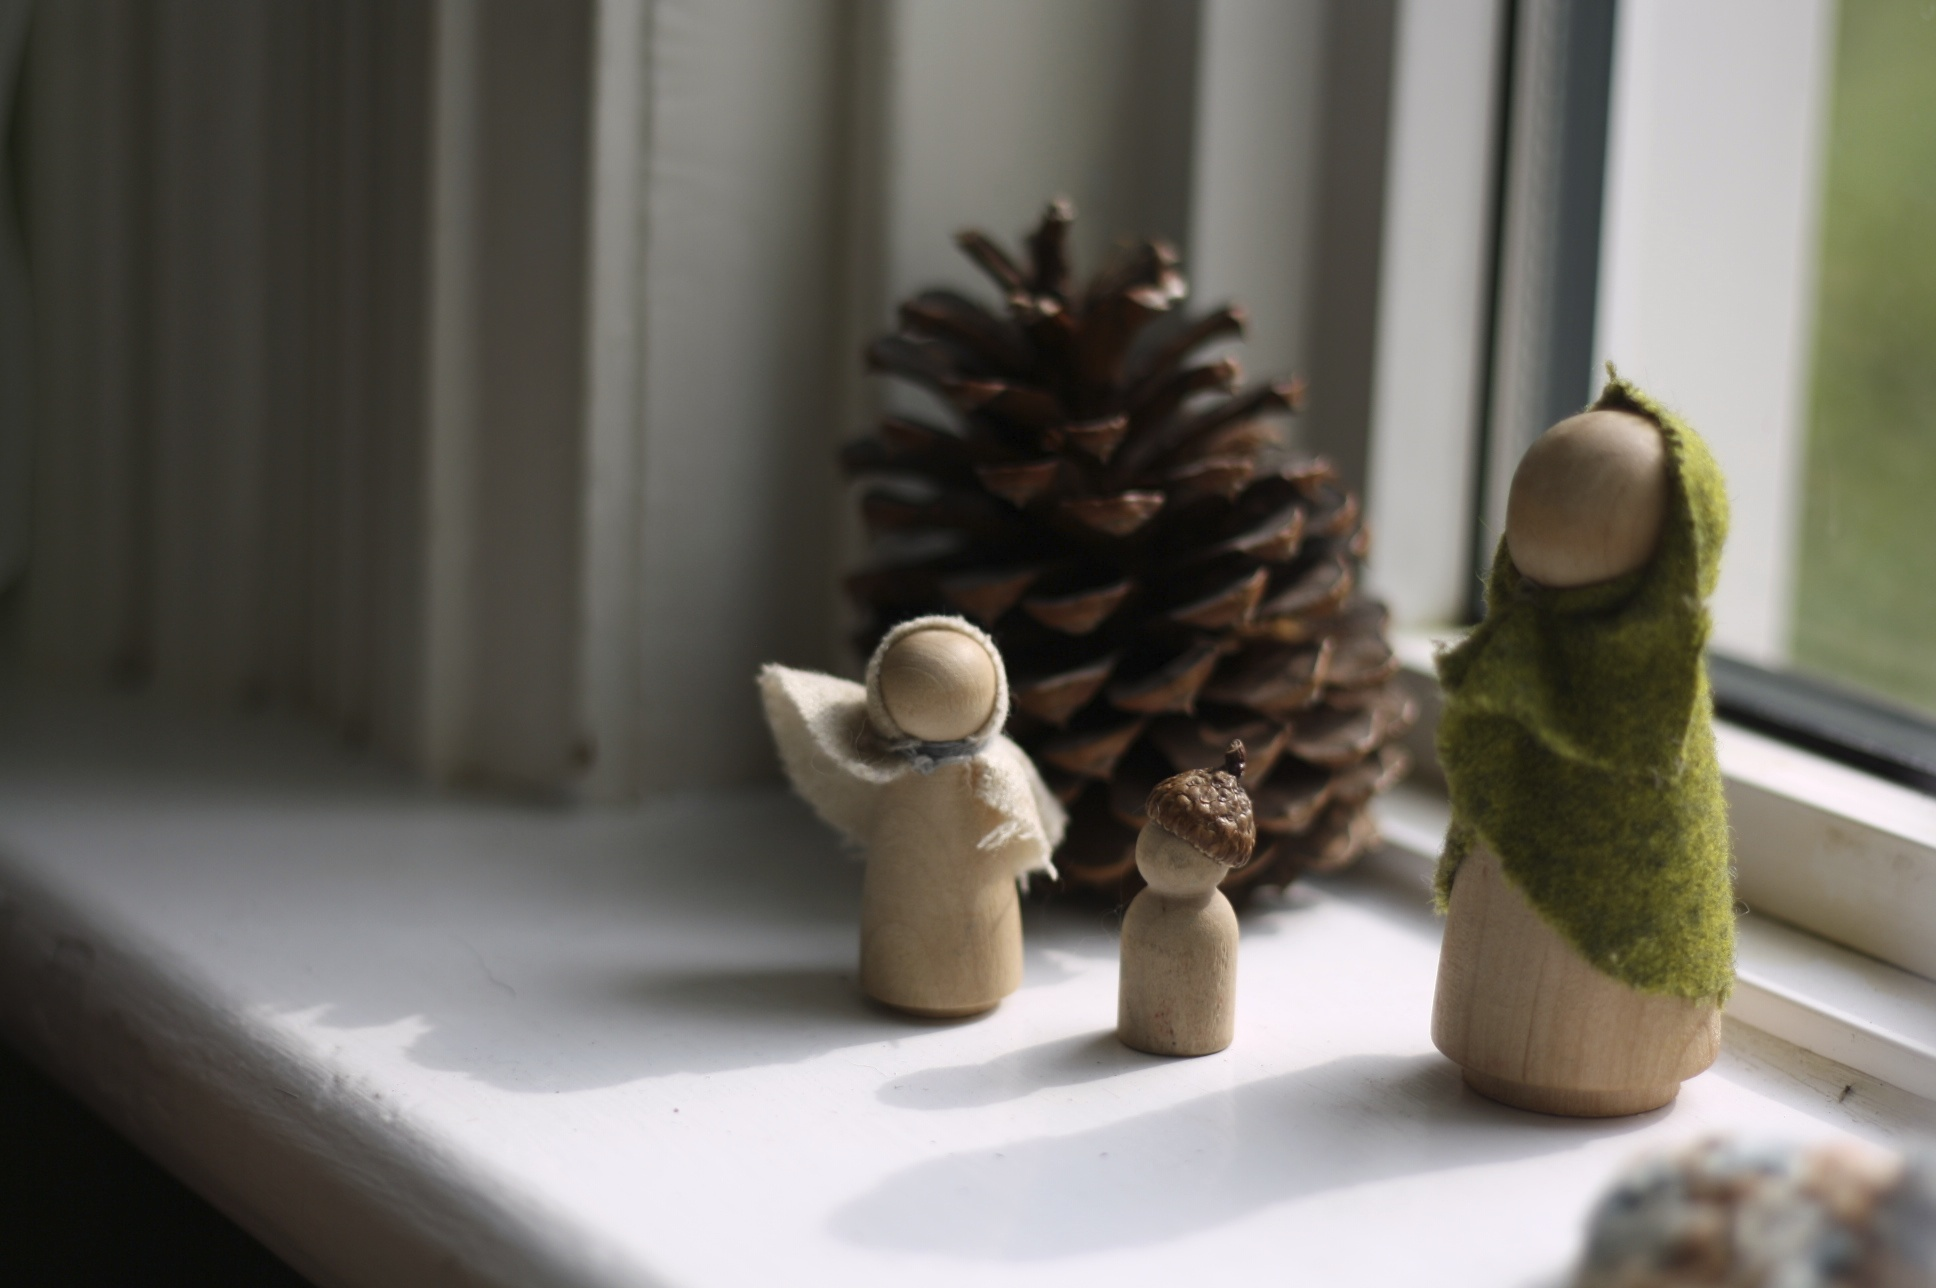 Wooden peg dolls on our window sill, by Fig and me.